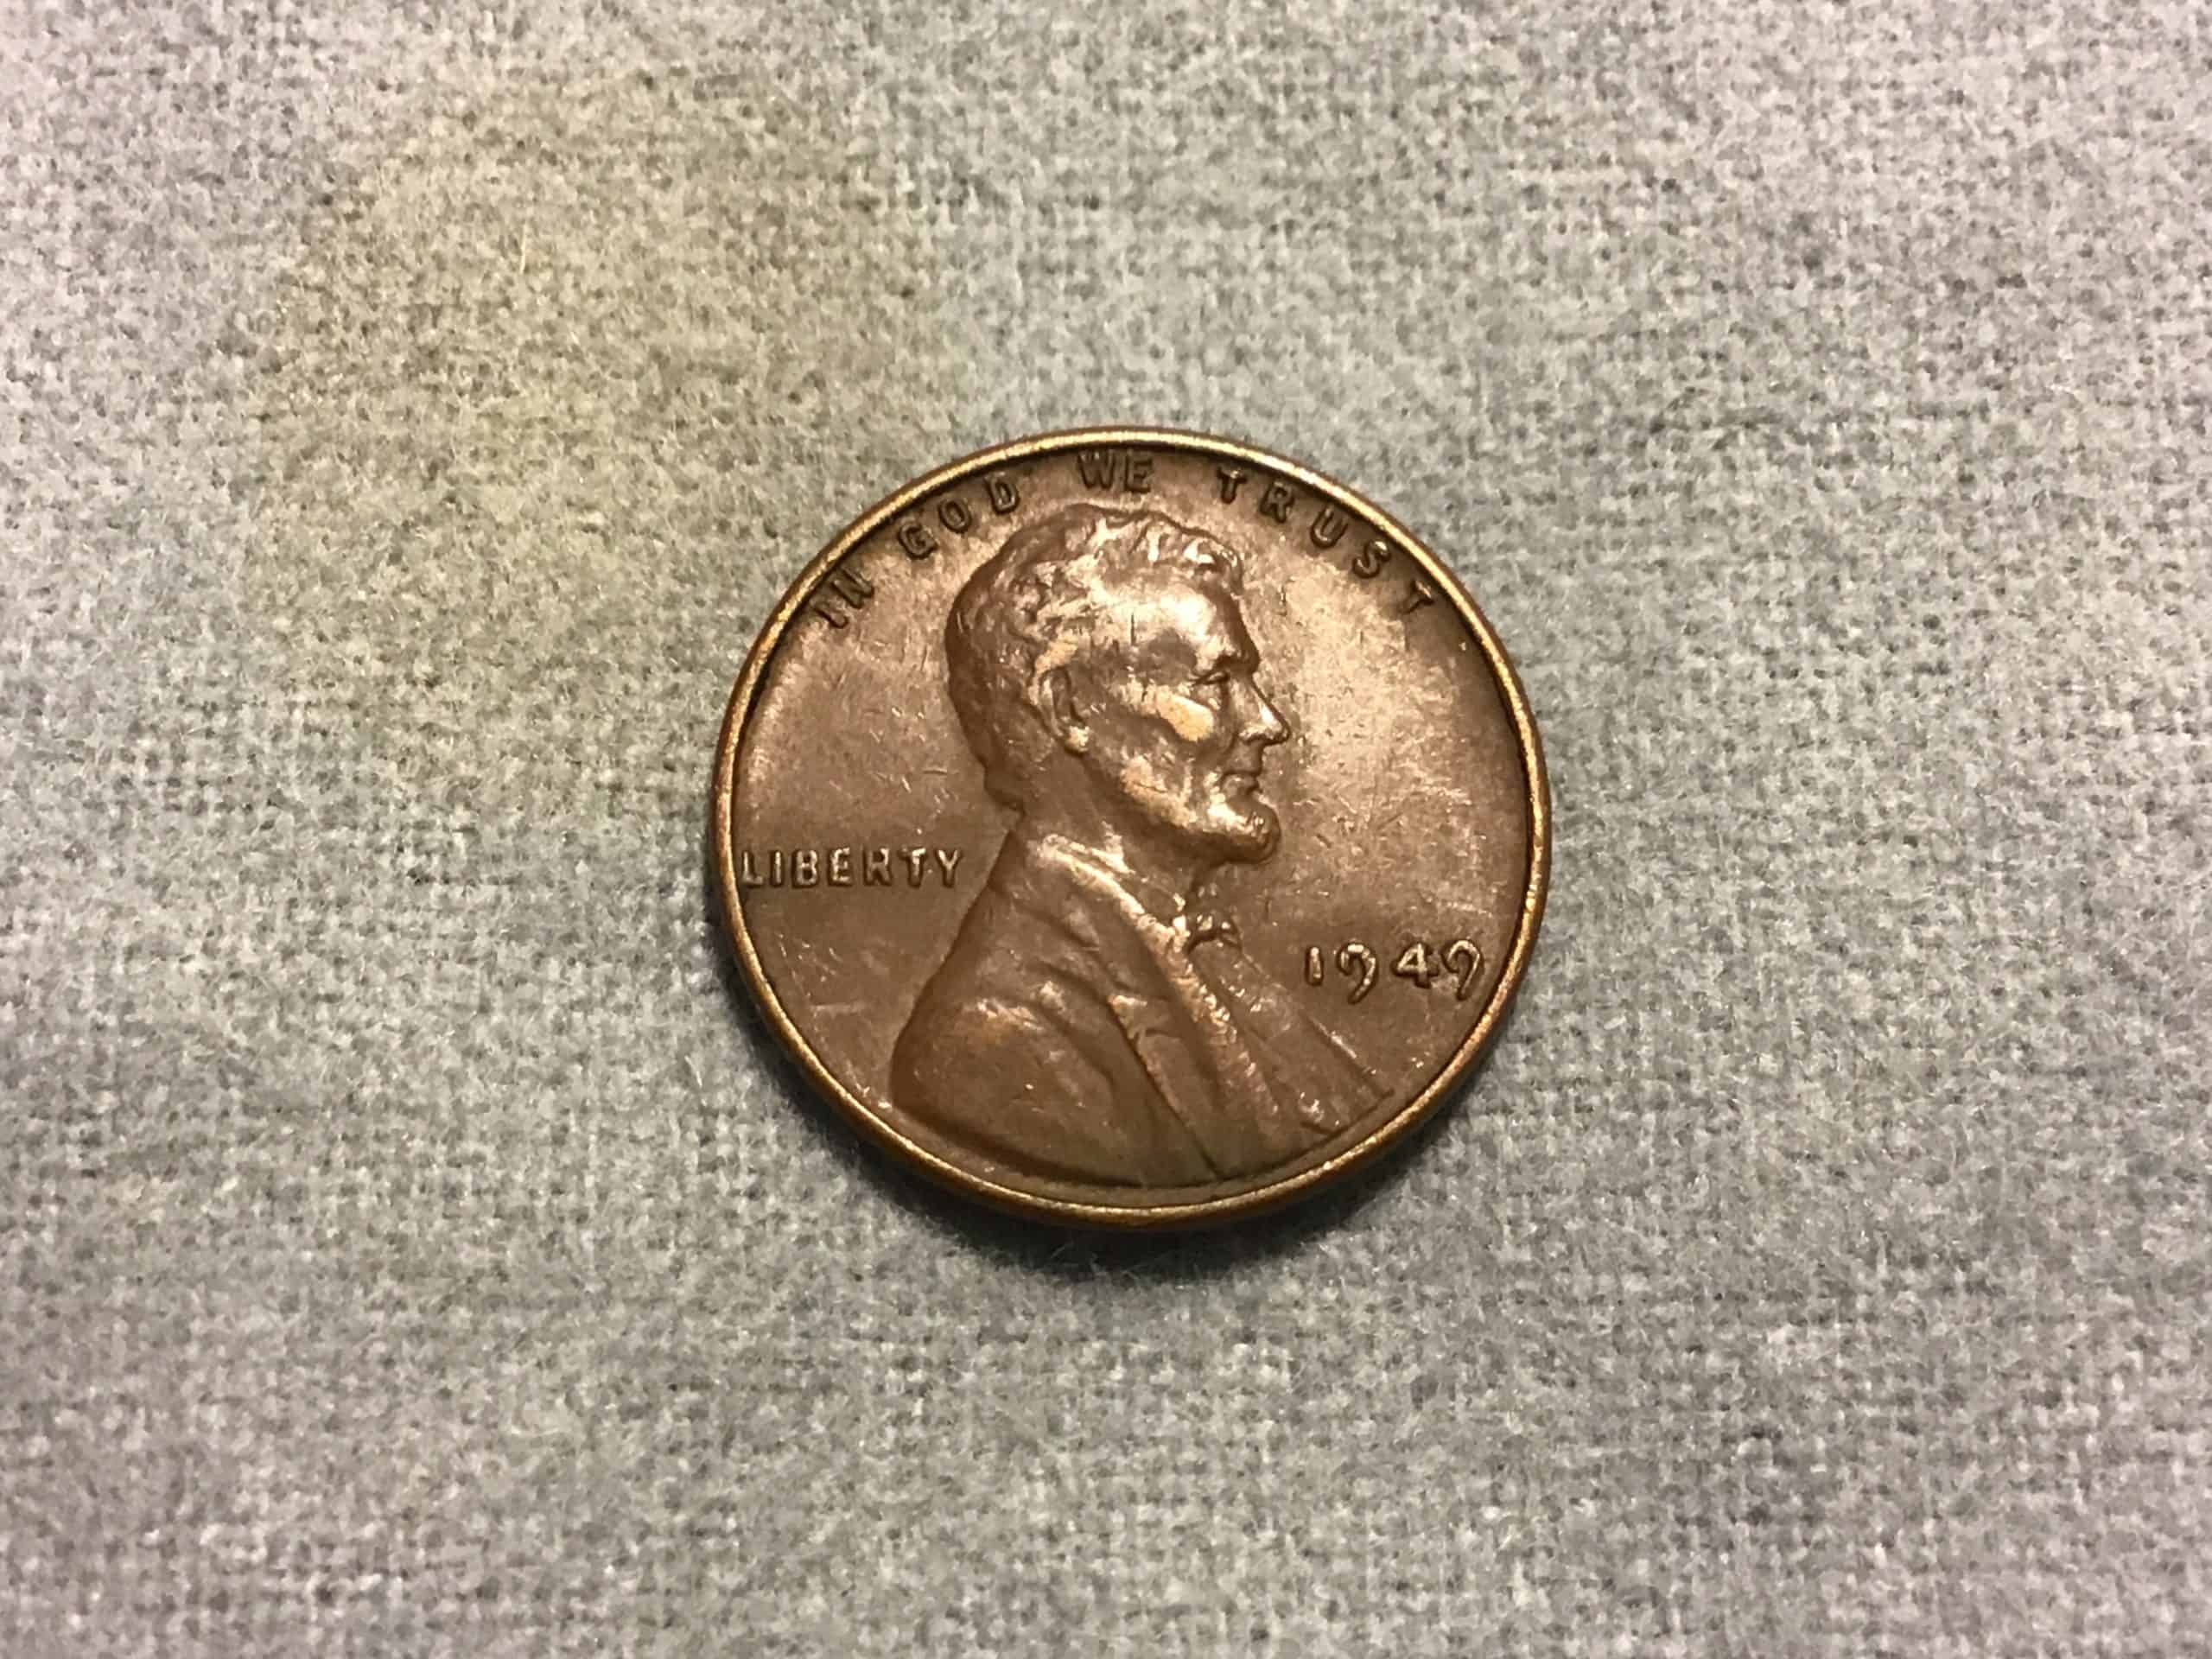 History of the 1949 Lincoln Penny